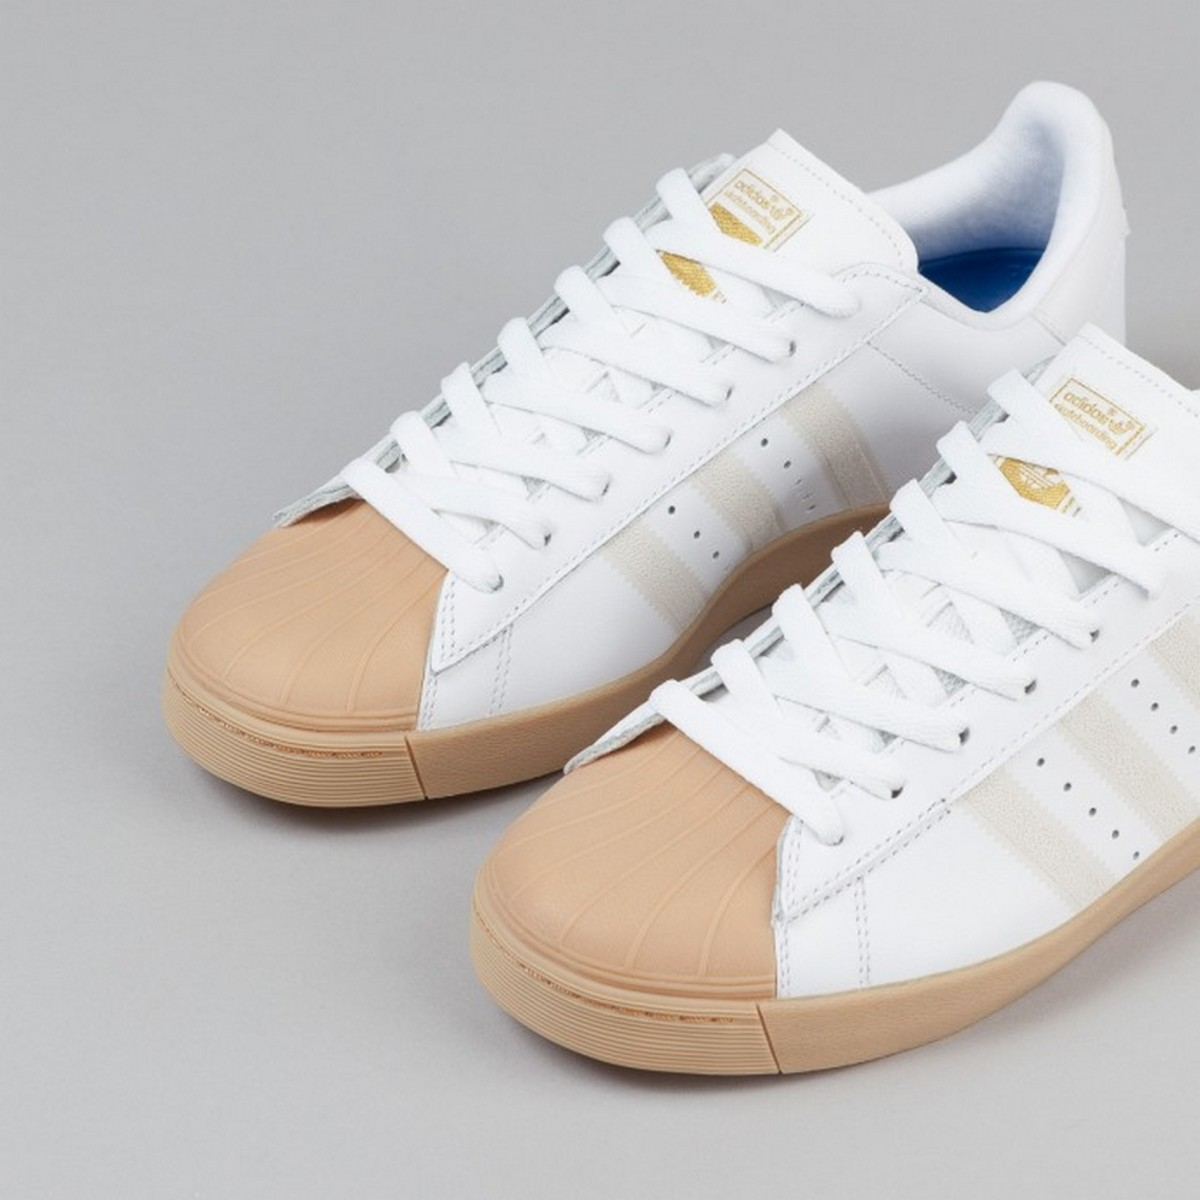 the-adidas-originals-superstar-vulc-arrives-in-white-leather-with-gum-soles-4